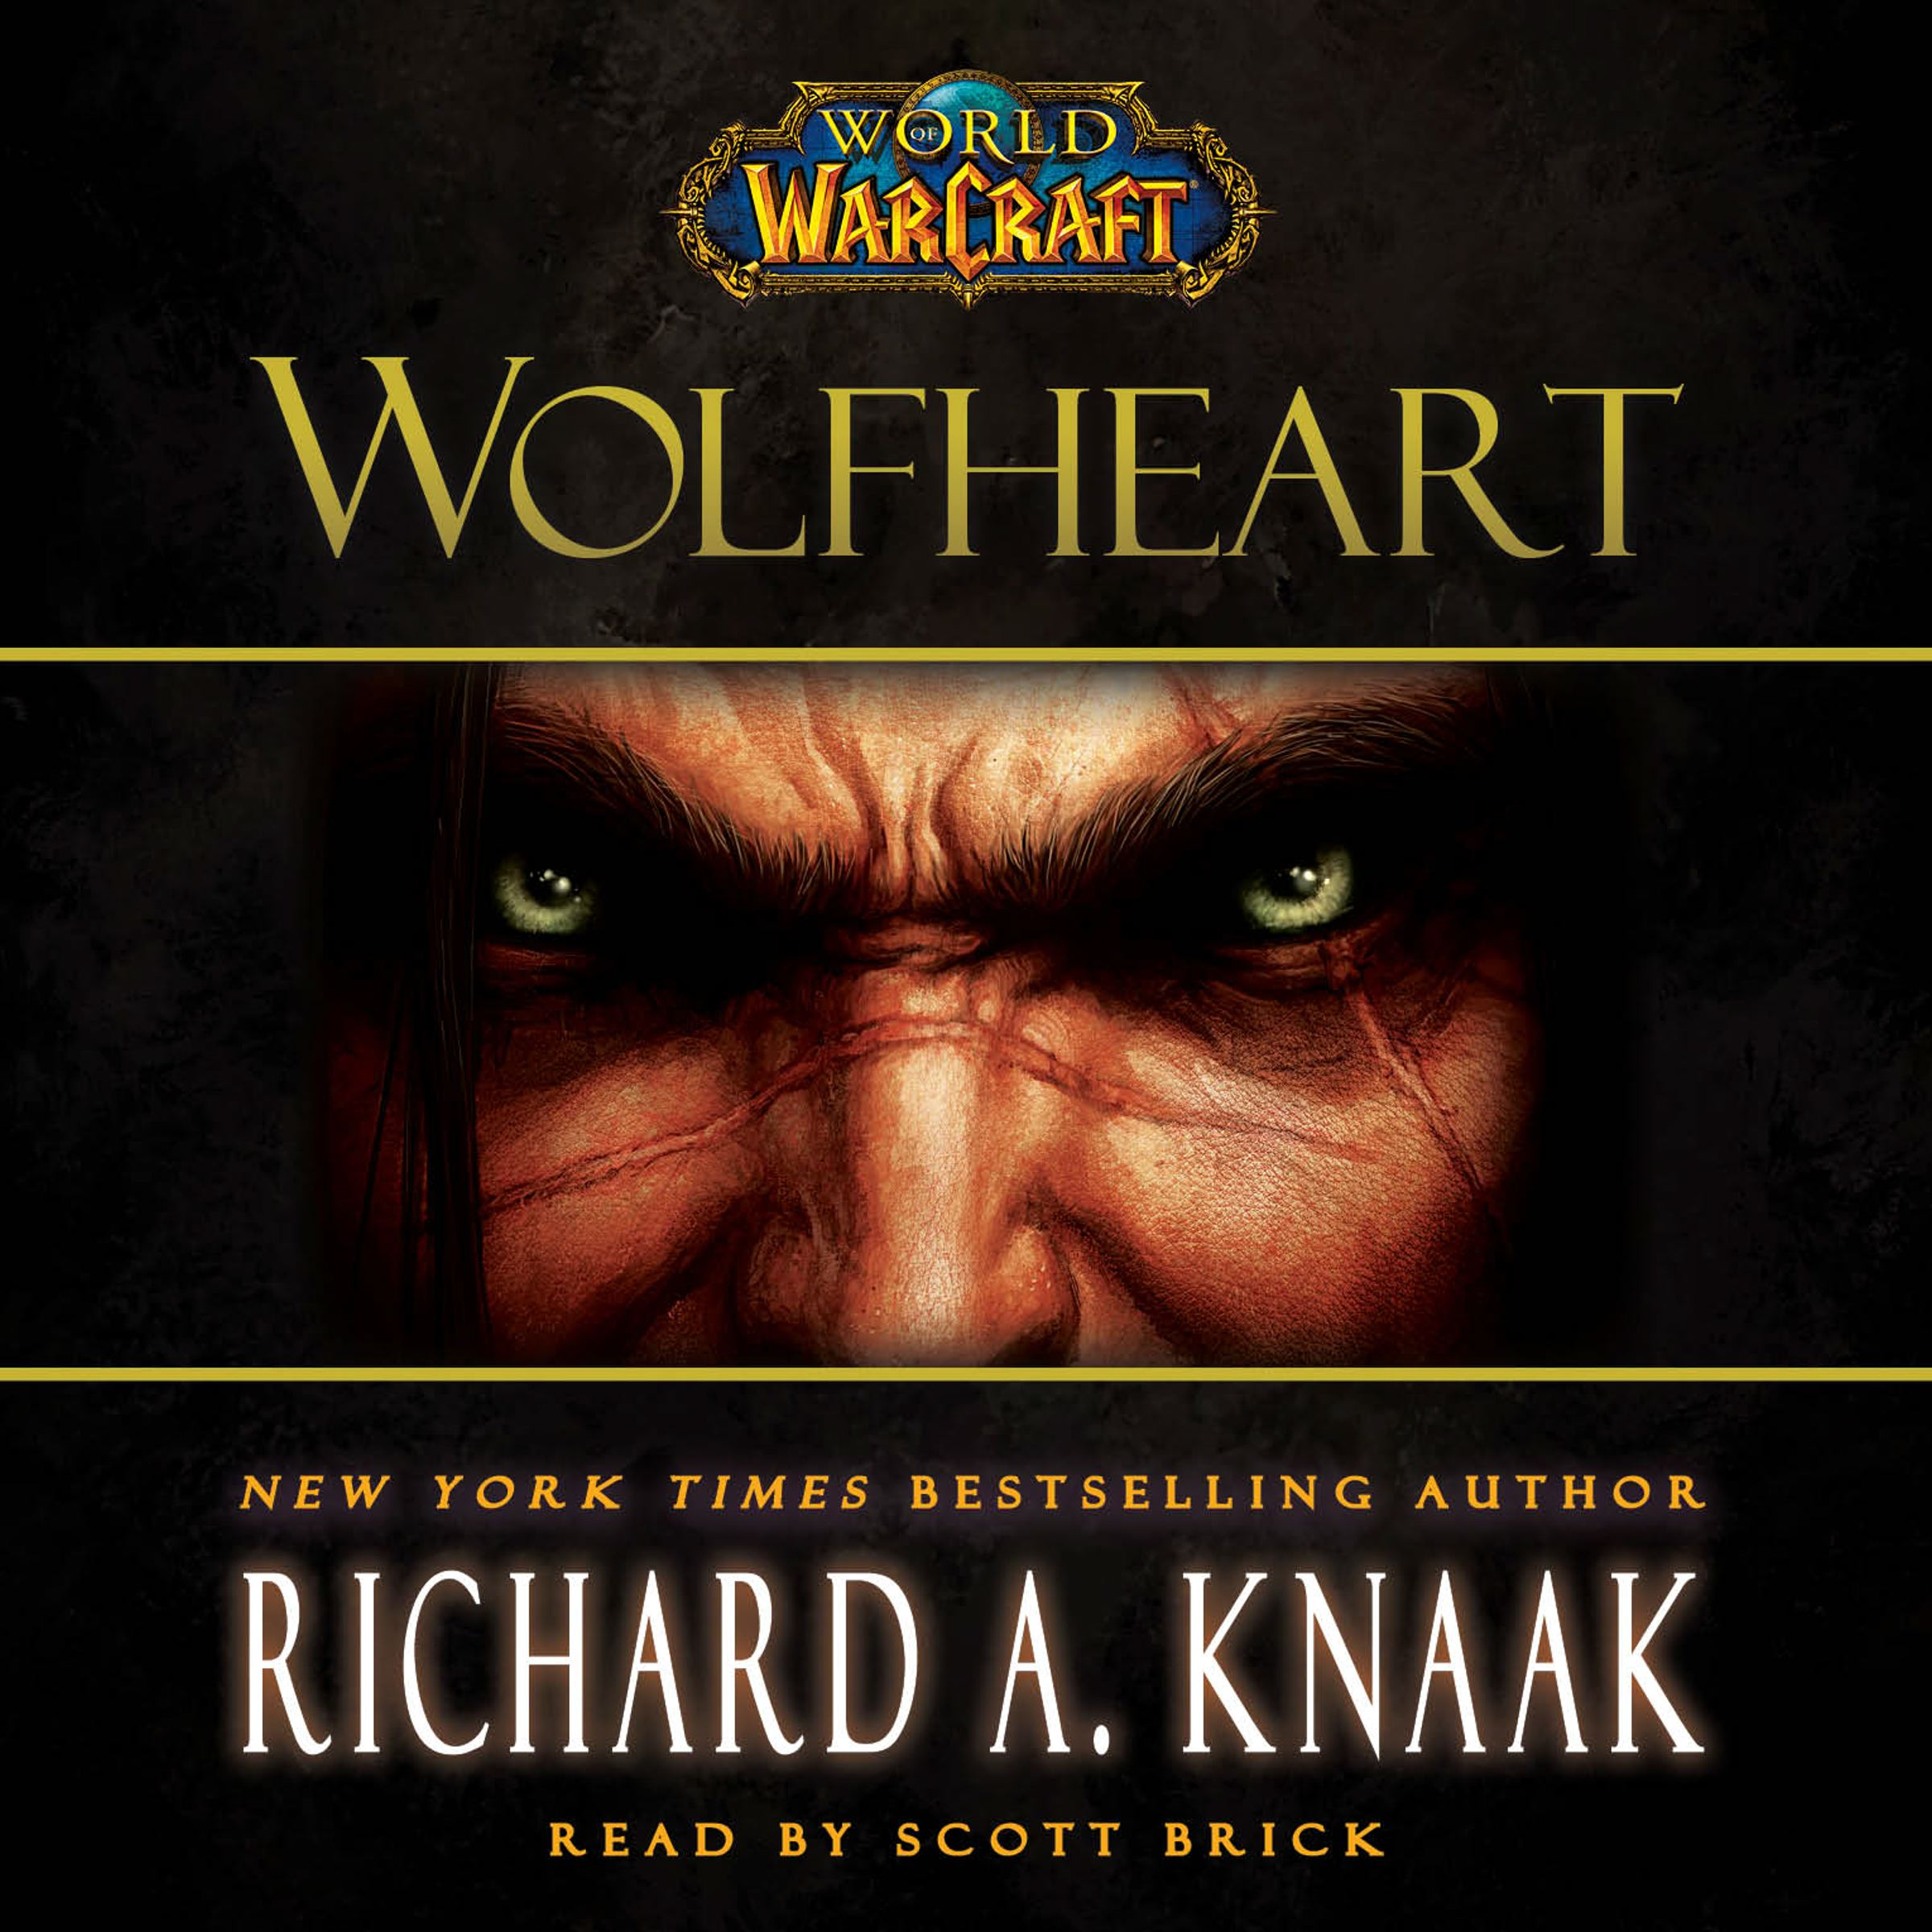 World-of-warcraft-wolfheart-9781442348240_hr